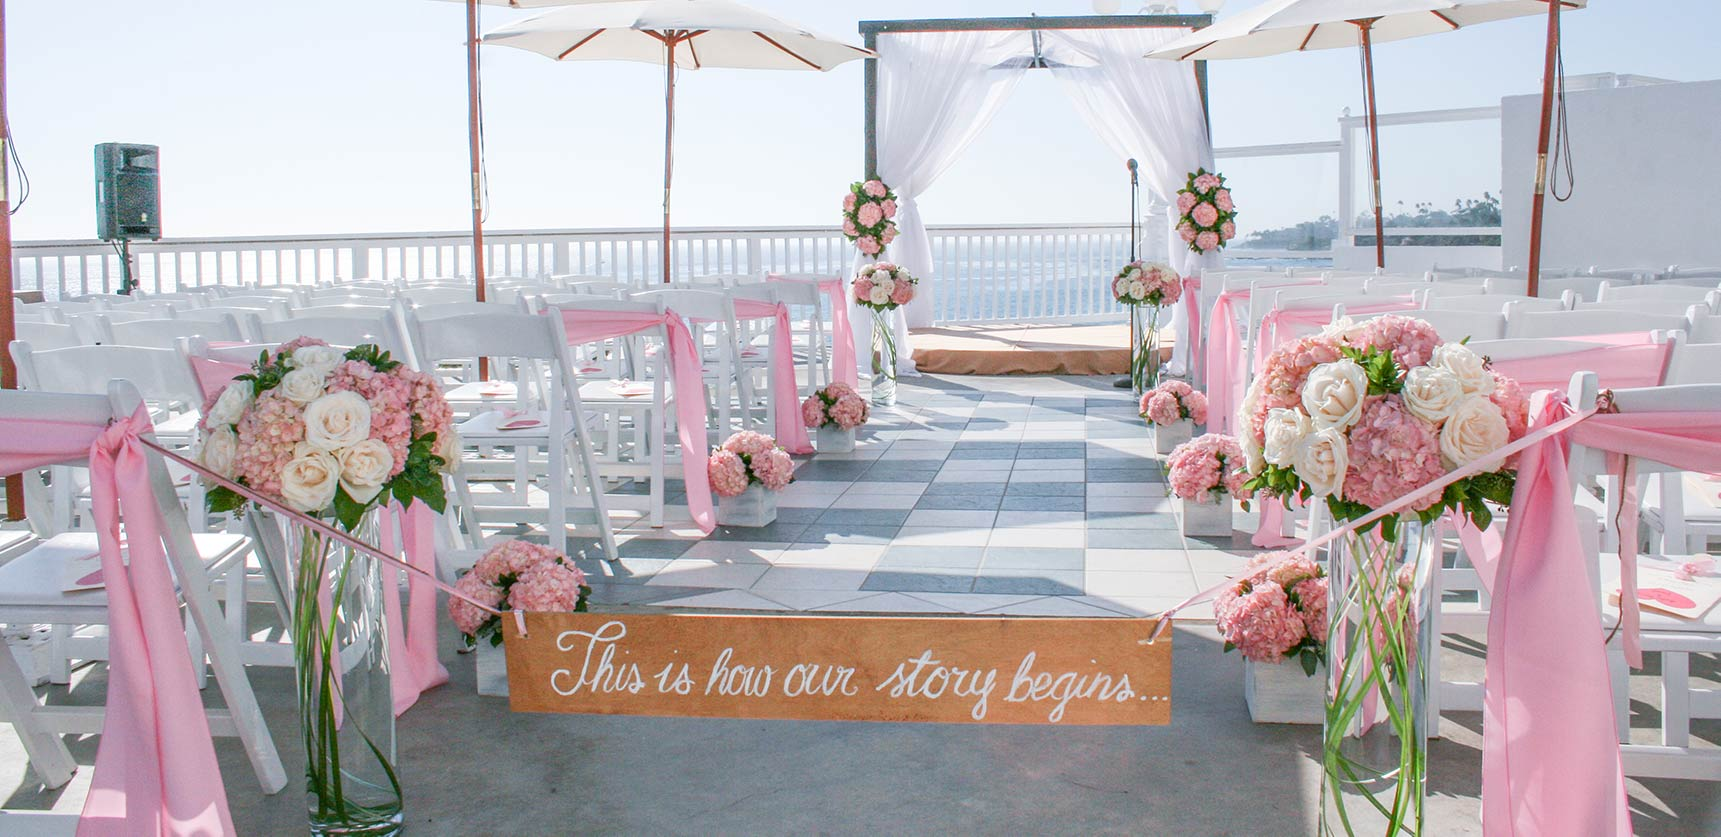 Wedding ceremony flowers occasions at laguna beach